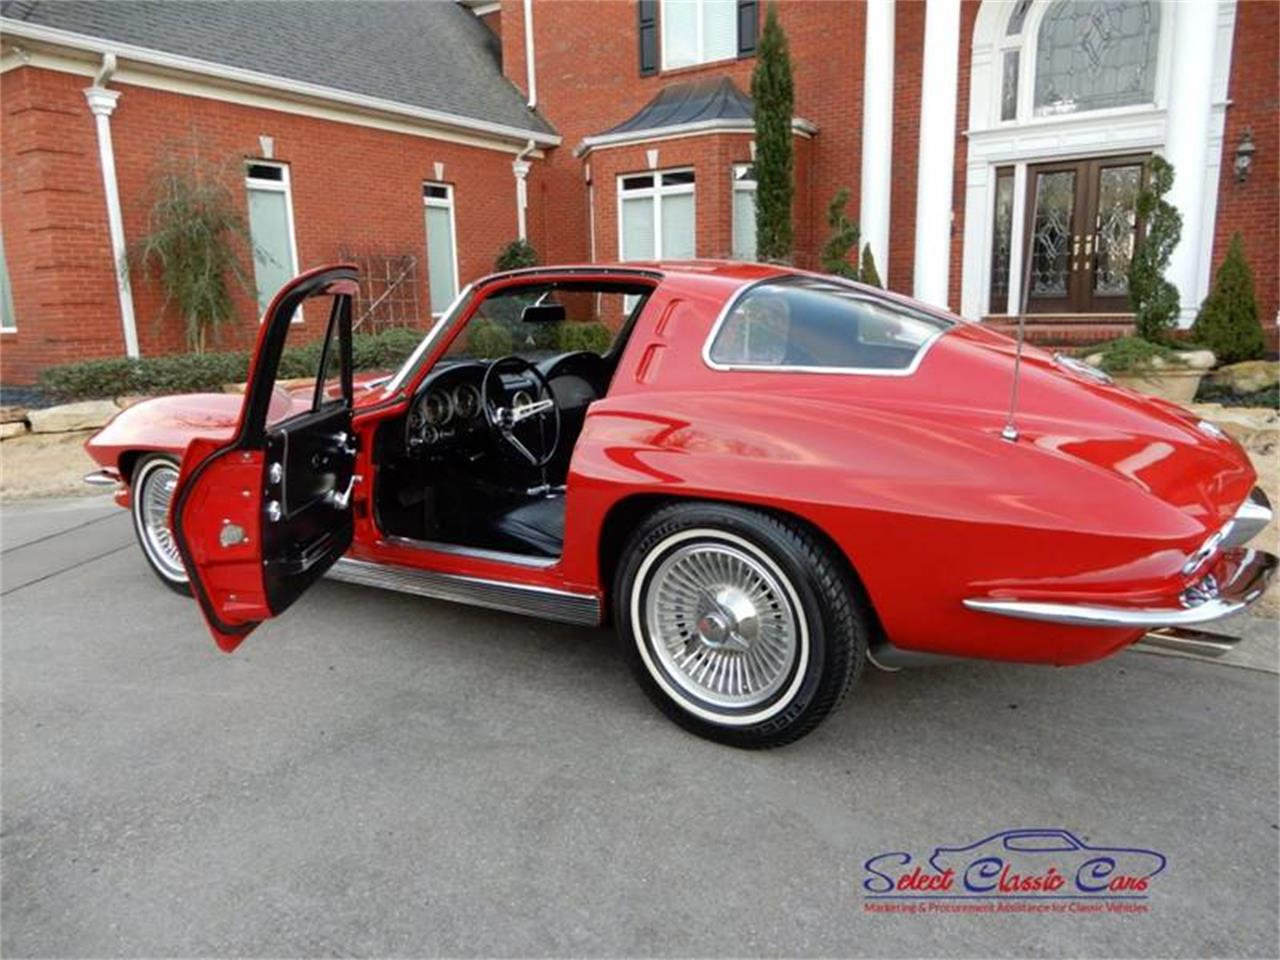 Large Picture of 1963 Chevrolet Corvette located in Georgia - $110,000.00 Offered by Select Classic Cars - PBO0